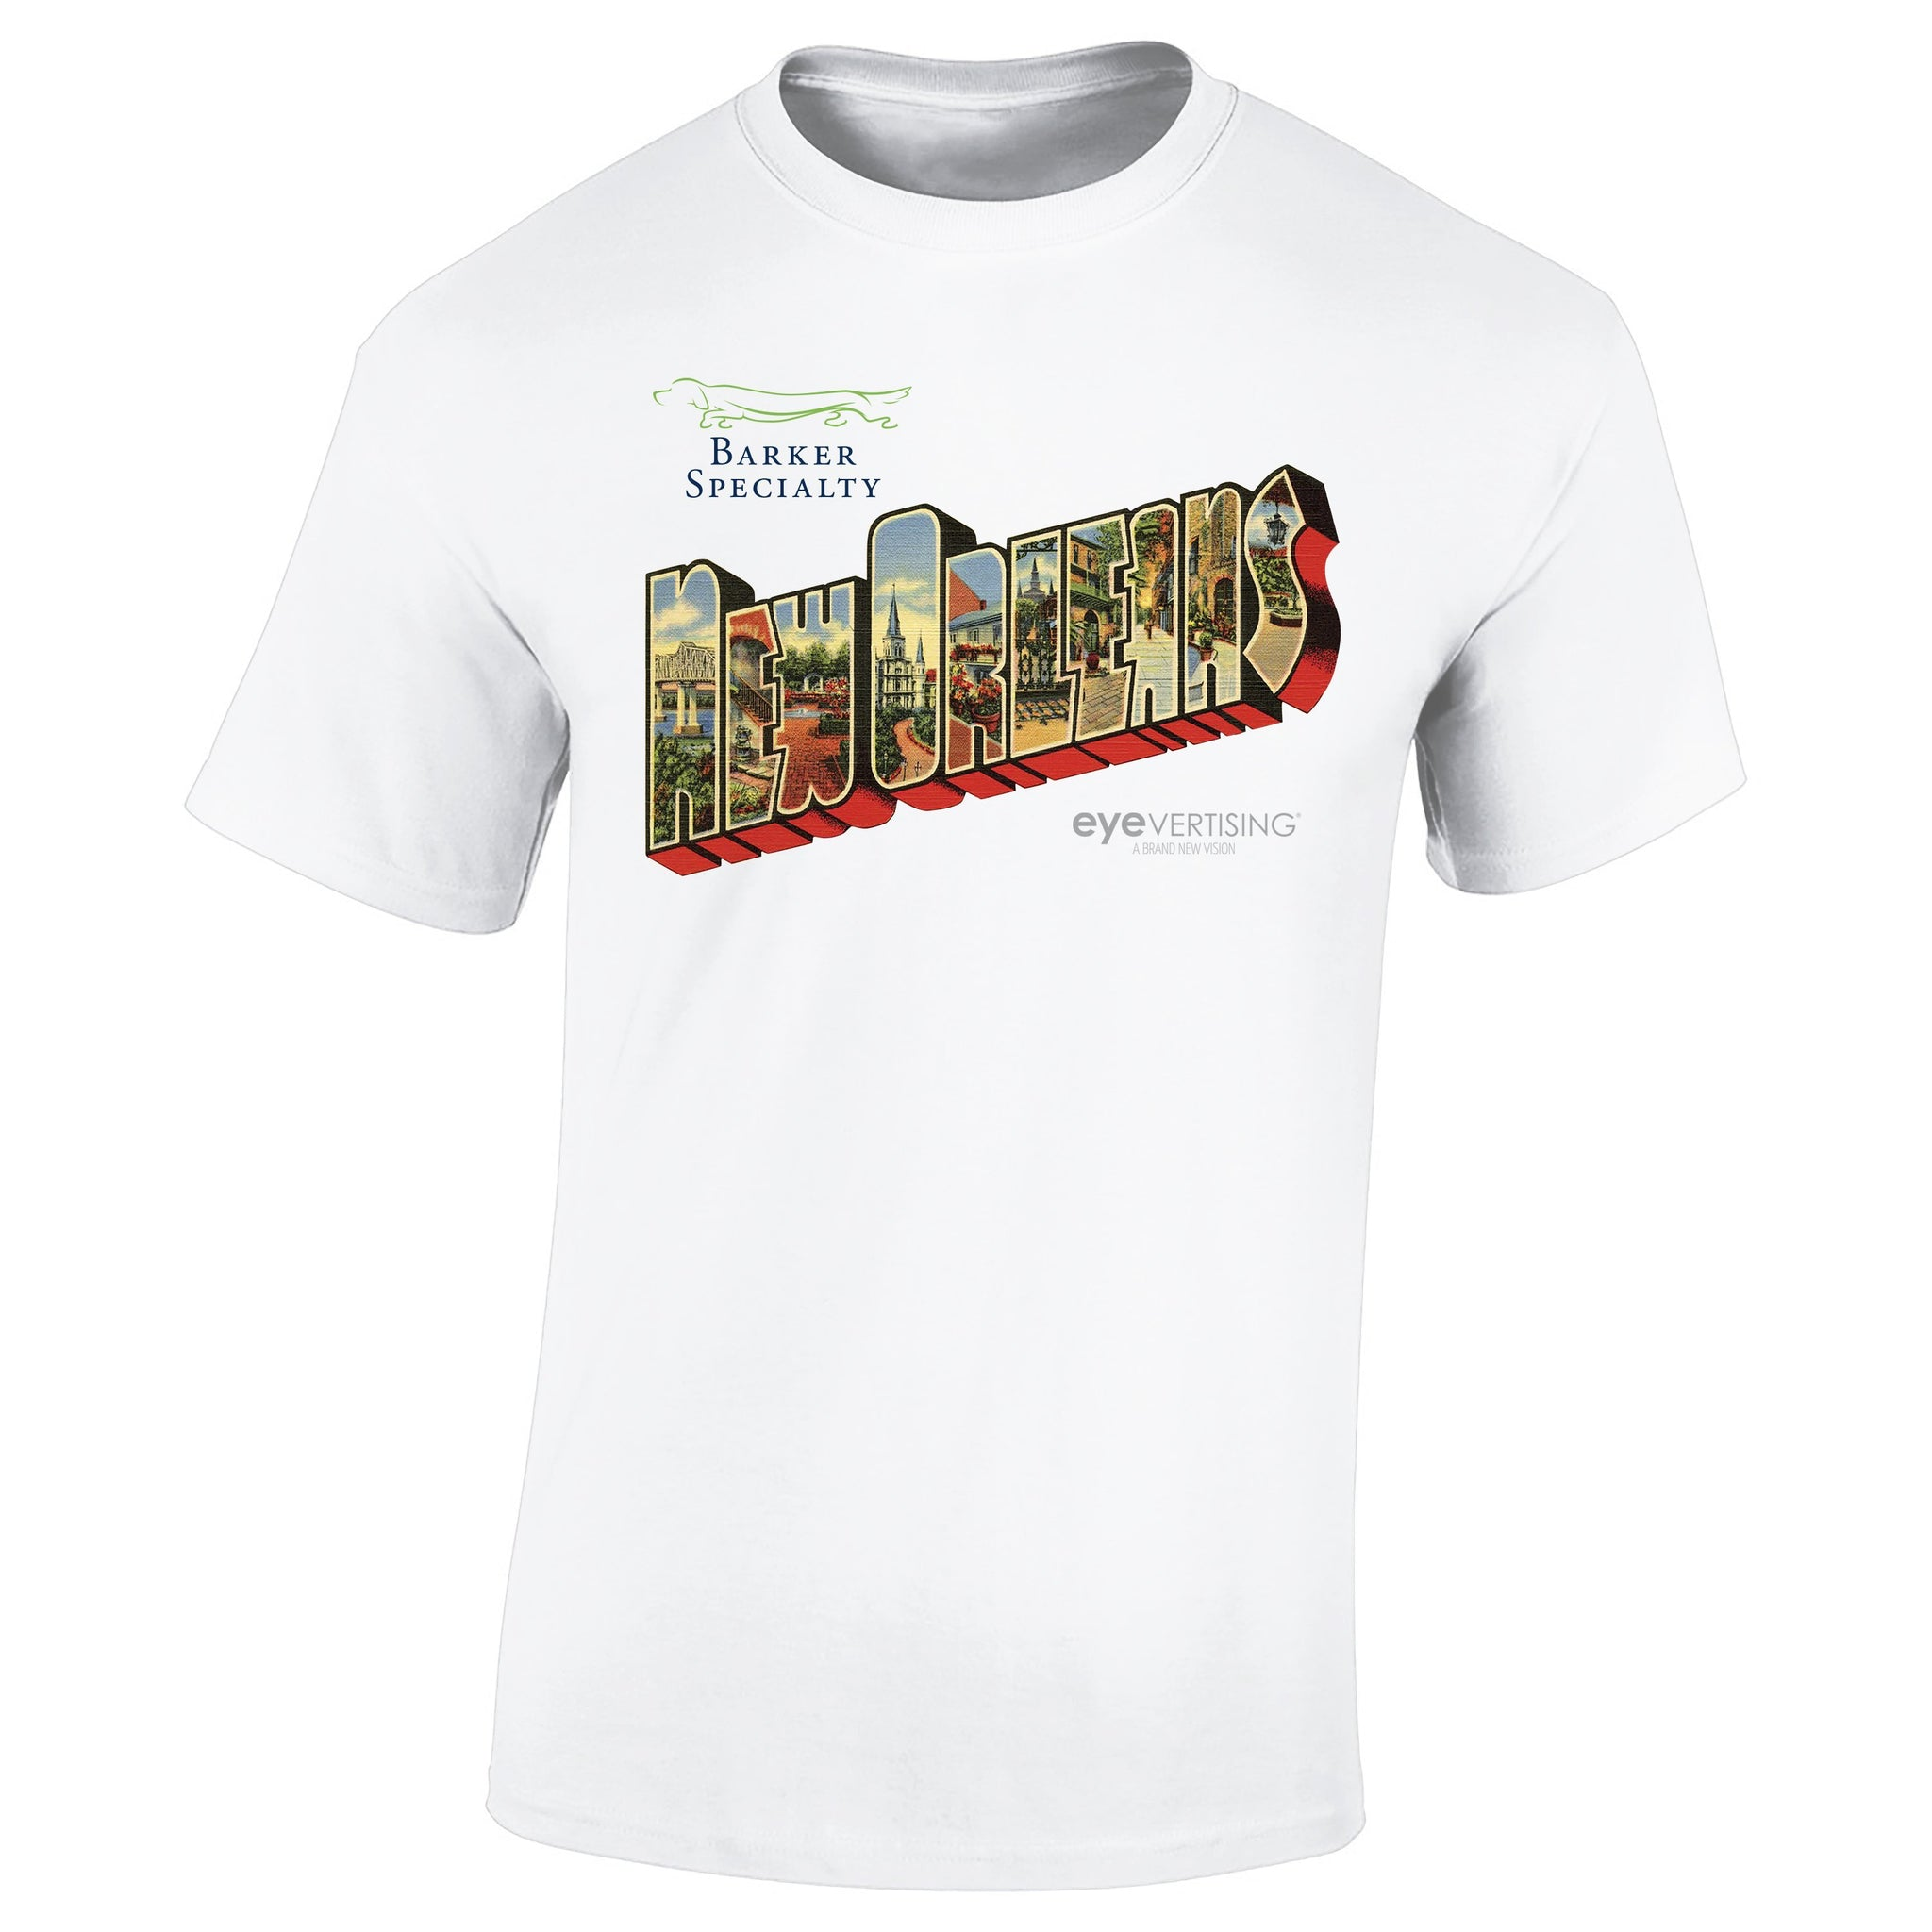 "3600-L12 - Full-Color On White/Very Light T-Shirt (Up To 12"" x 12"")"